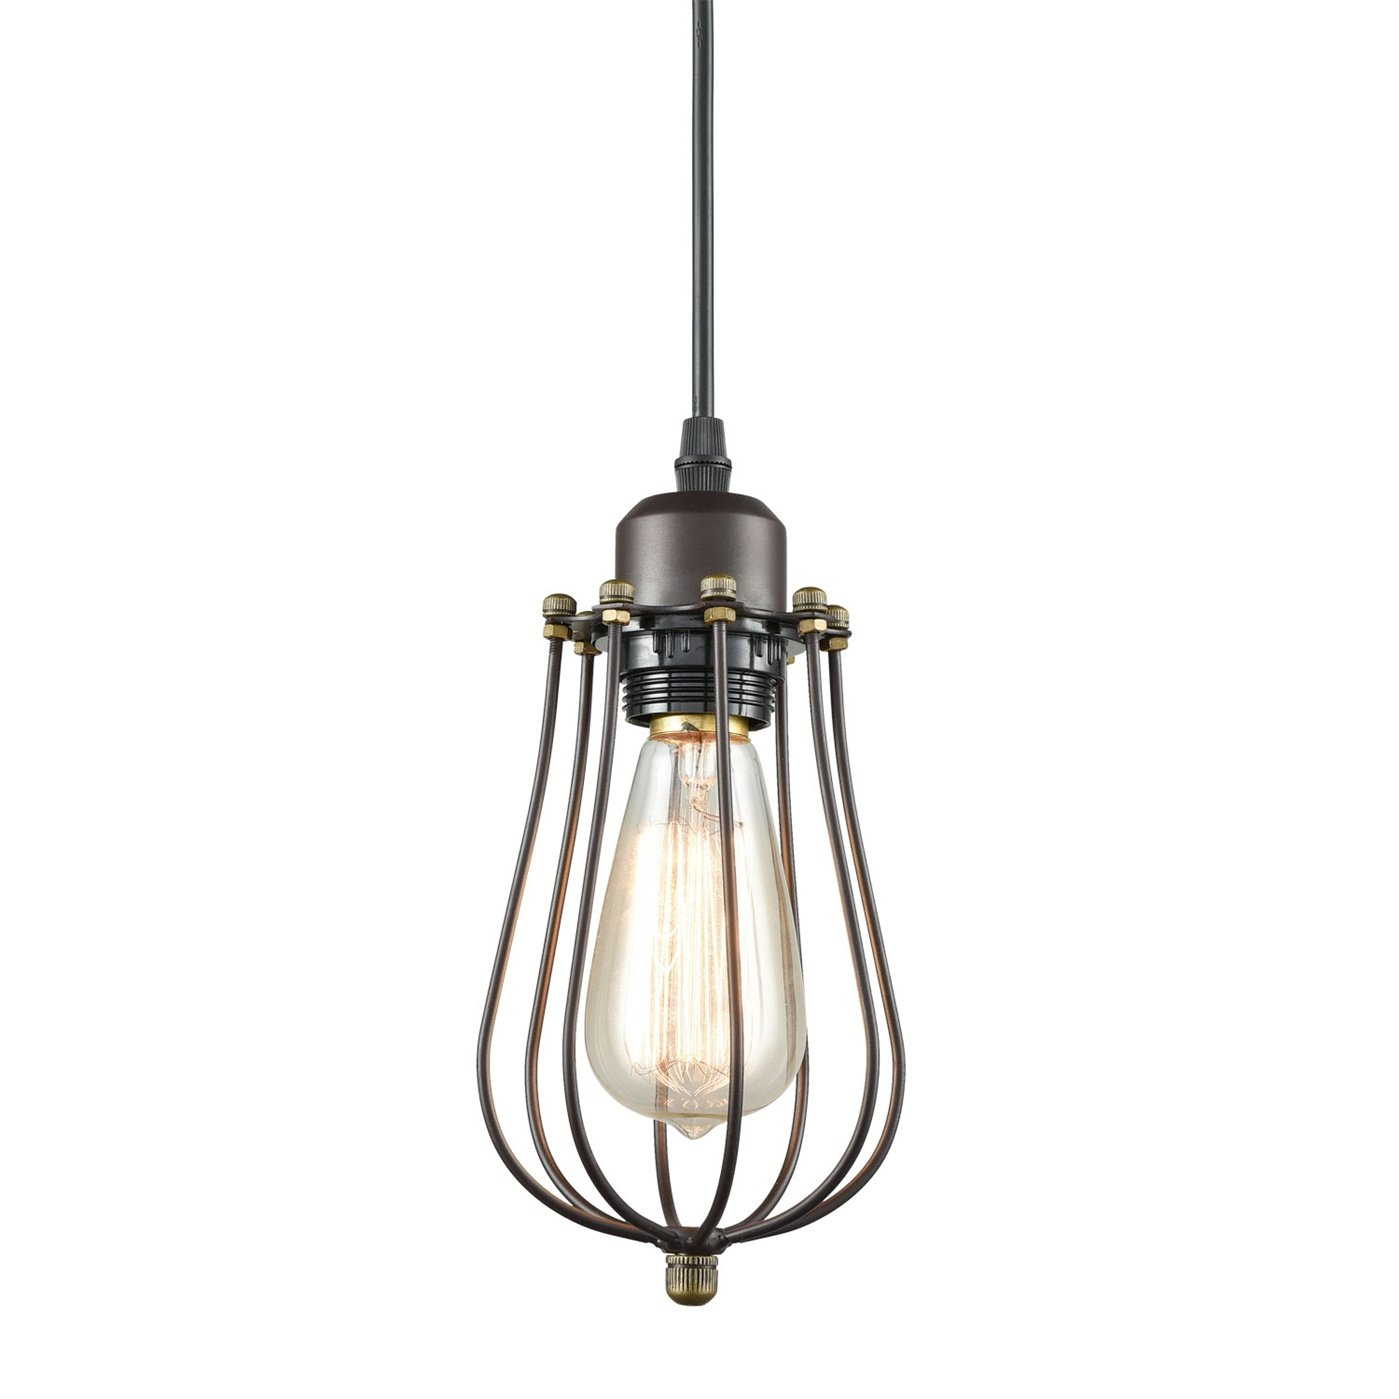 island glass chandelier black fixtures fixture small kitchen ceiling blown teardrop mini bathroom lamp lights chandeliers clever light country french with superb lighting hanging together pendant mount bench at attractive hallway